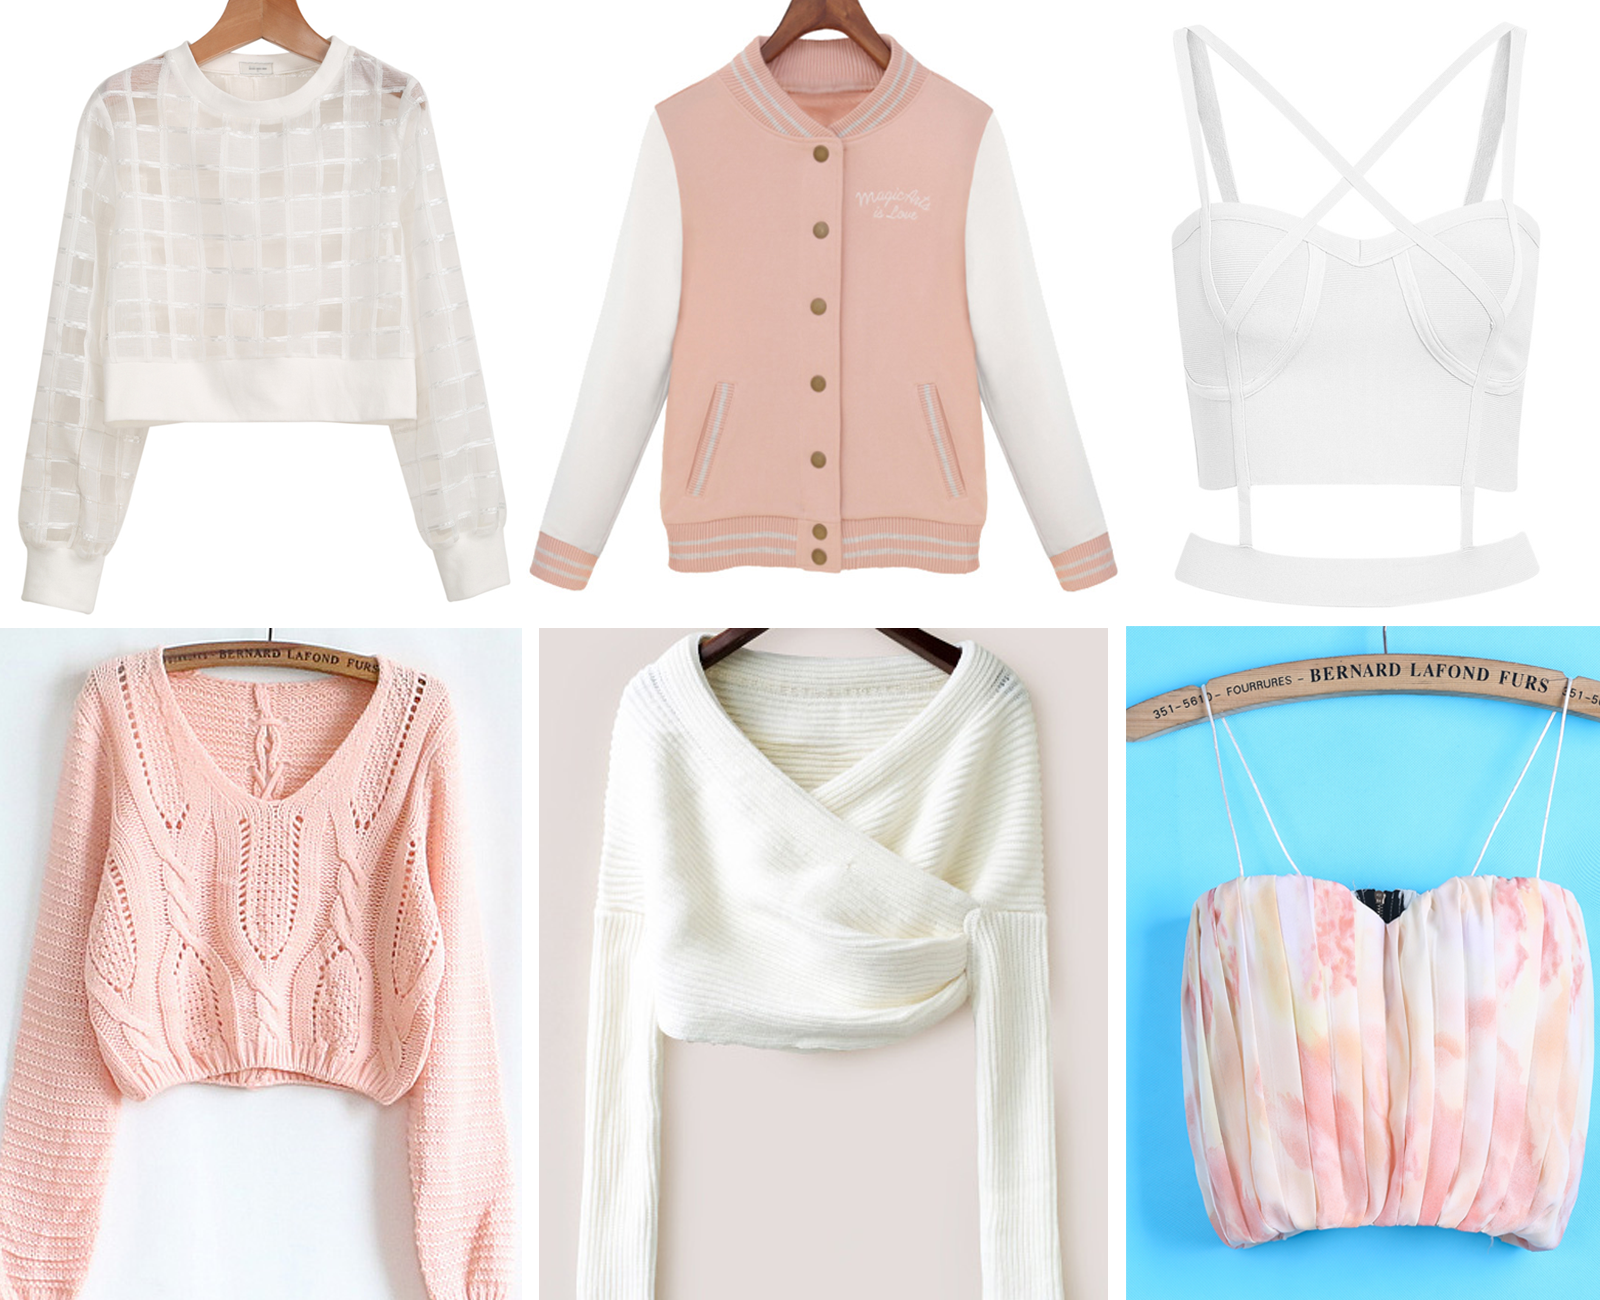 My favorite tops from SheInside, including a sheer white crop top, pink varsity jacket, strappy white tank, cropped sweaters, and pleated pastel top!